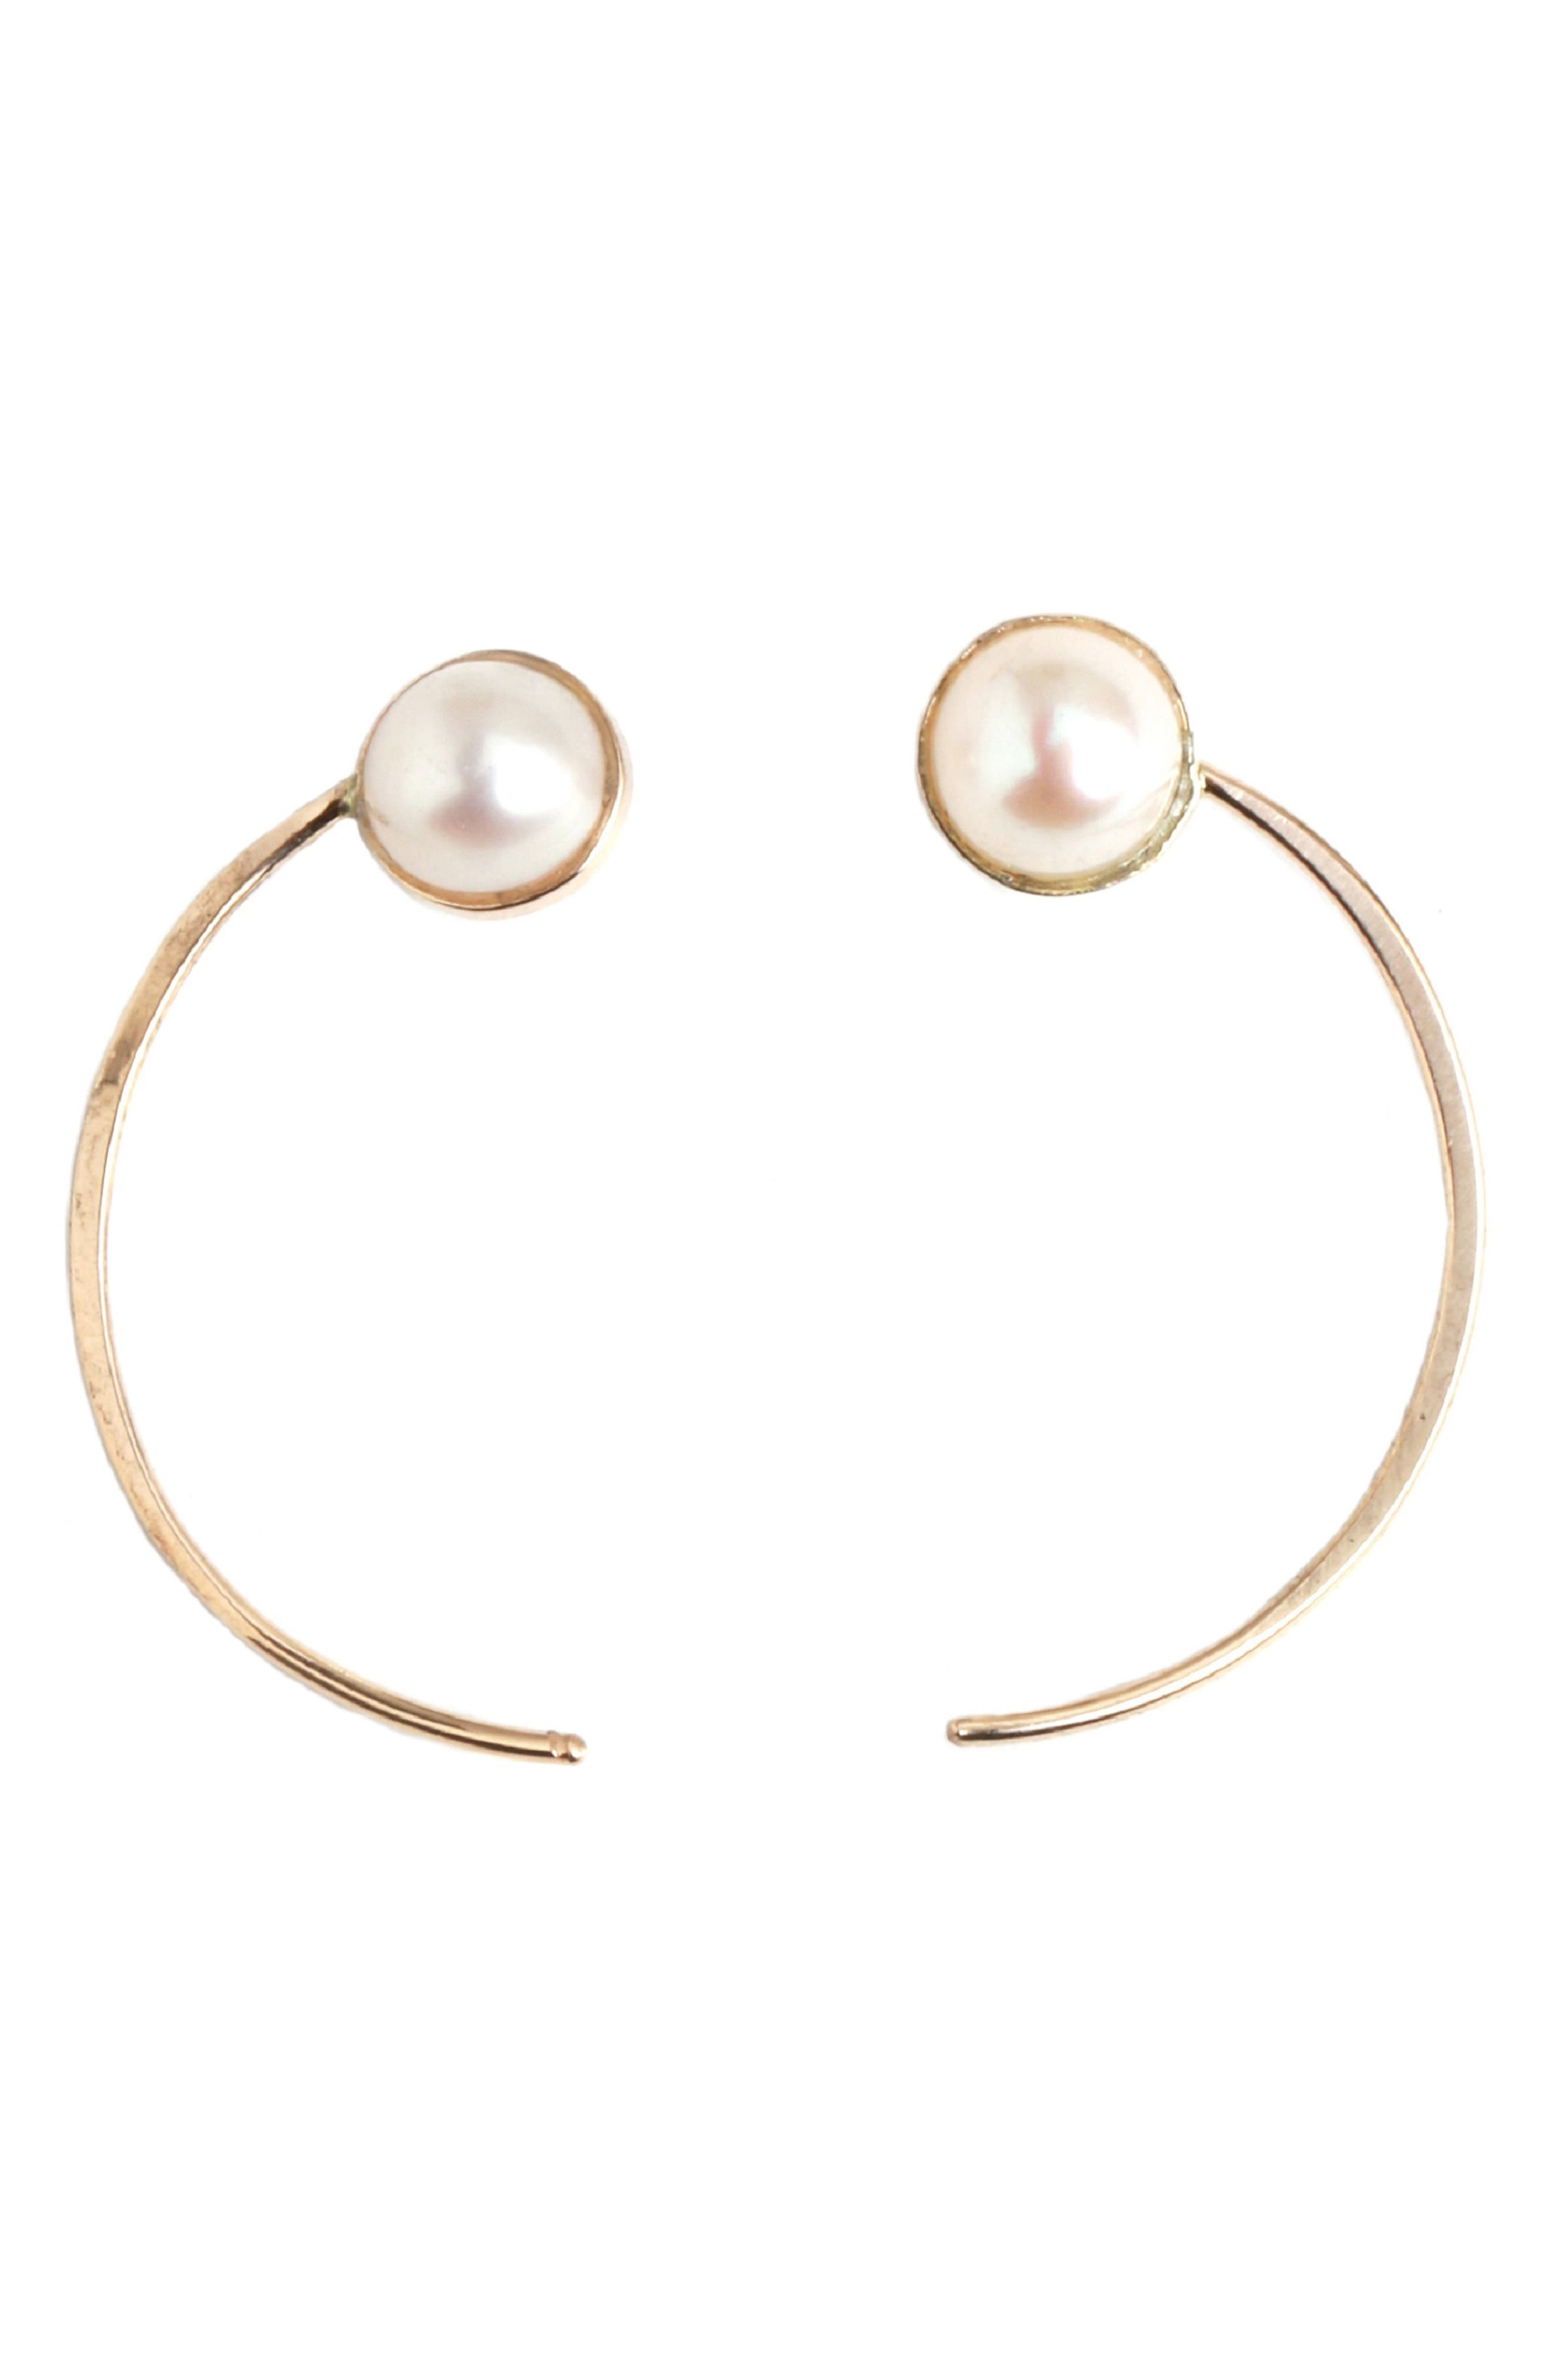 MELISSA JOY MANNING Pearl Swoop Earrings in Pearl/ Yellow Gold